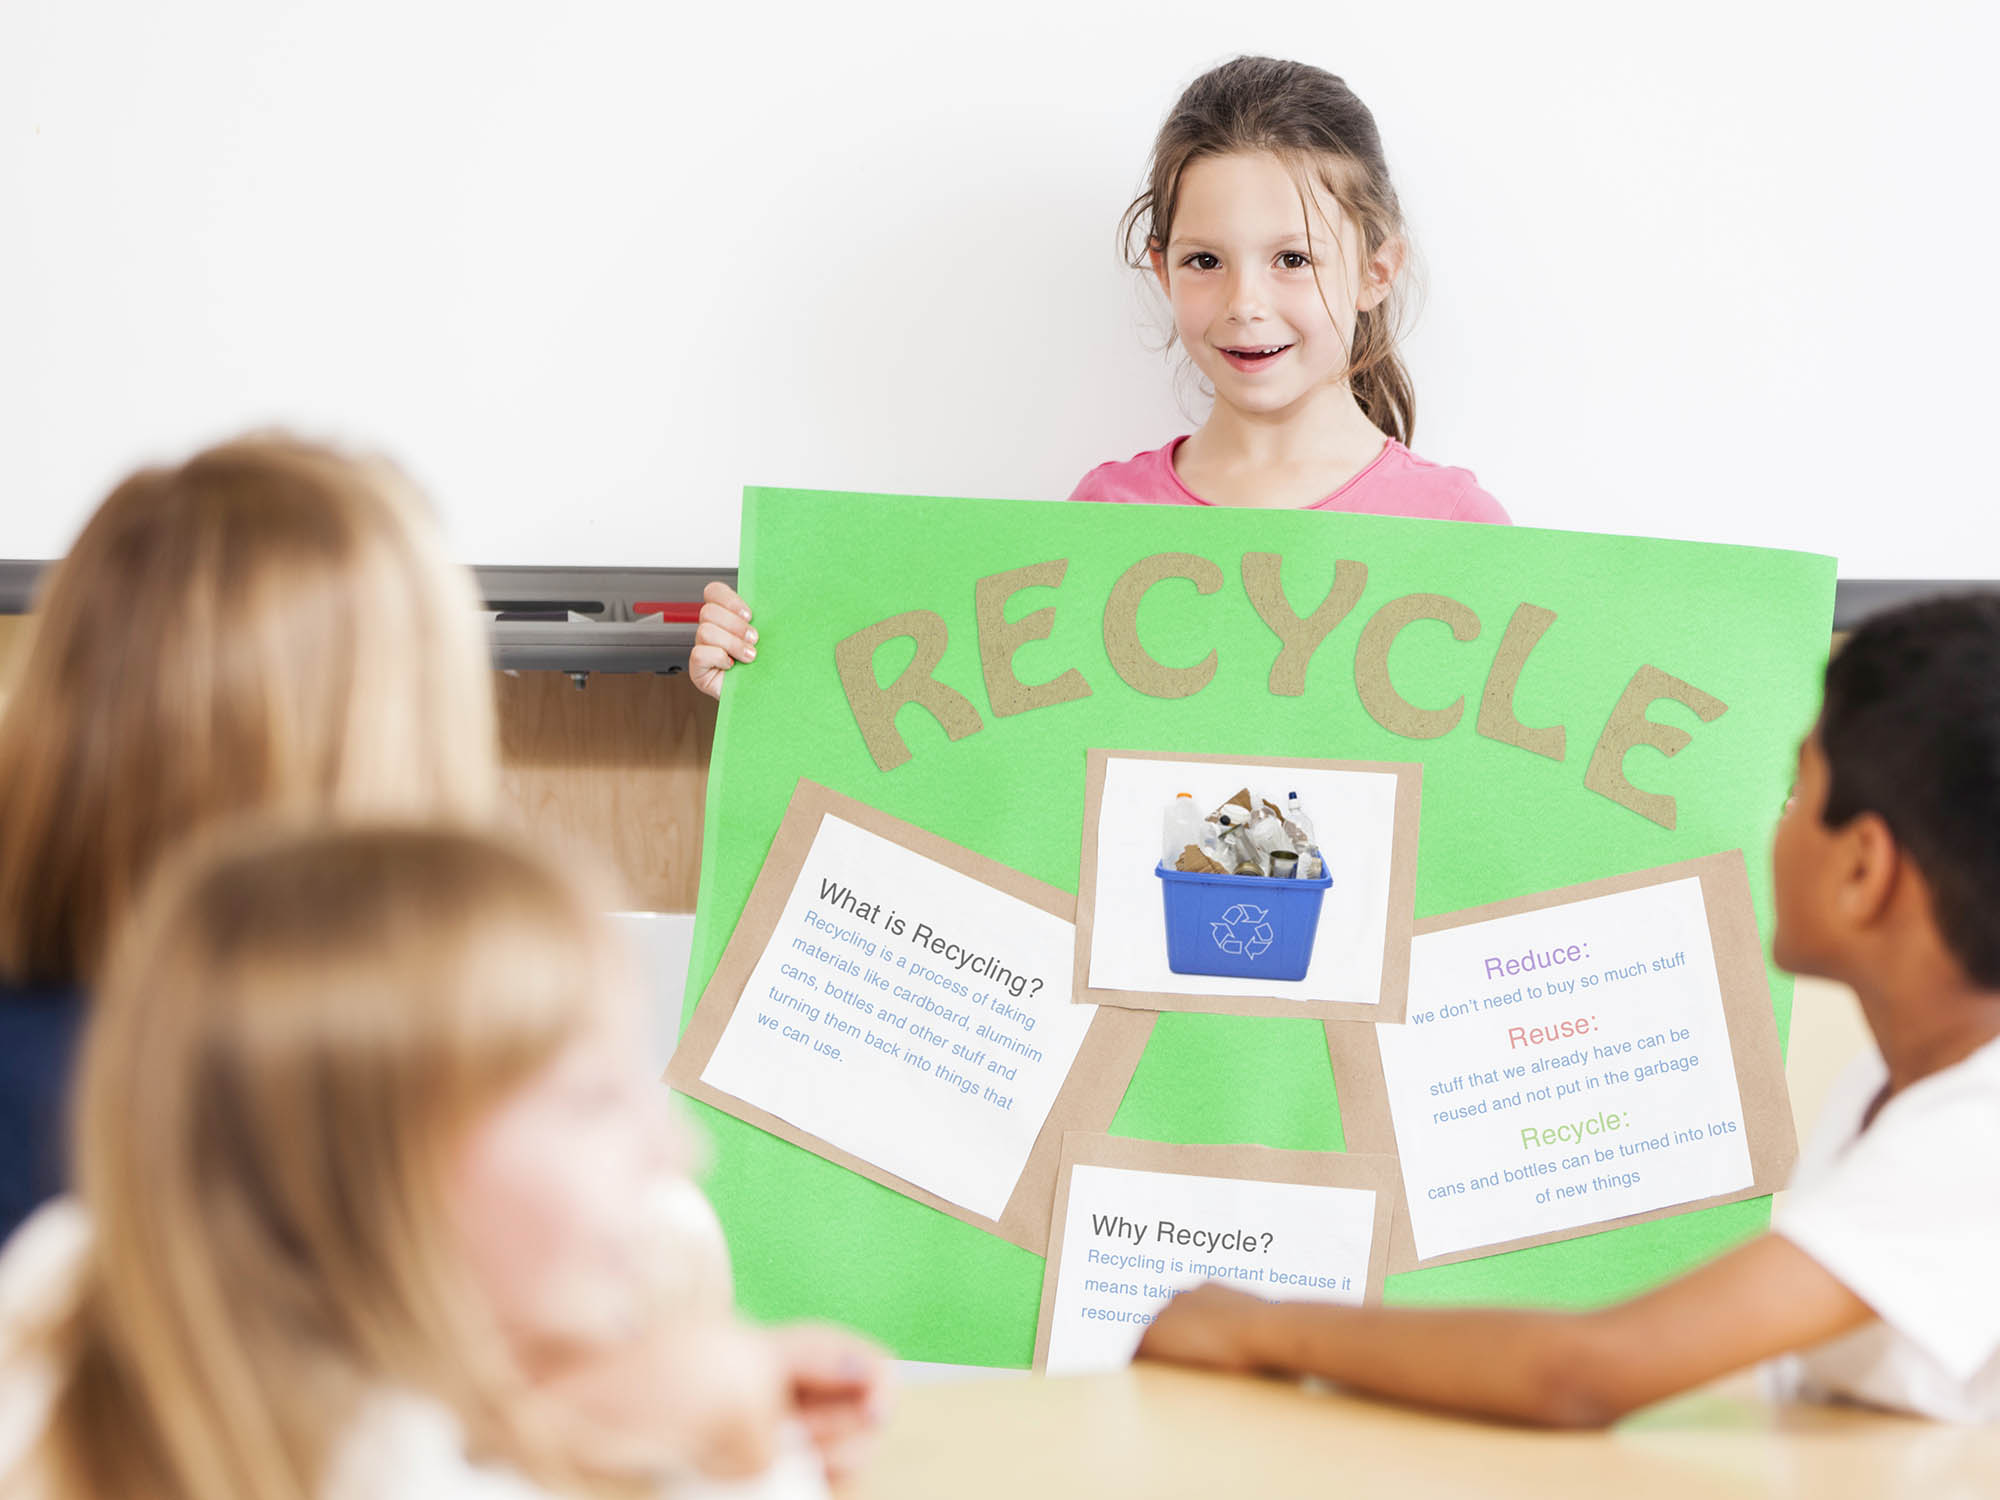 Pictures and Slogans Persuade an Audience! | Scholastic